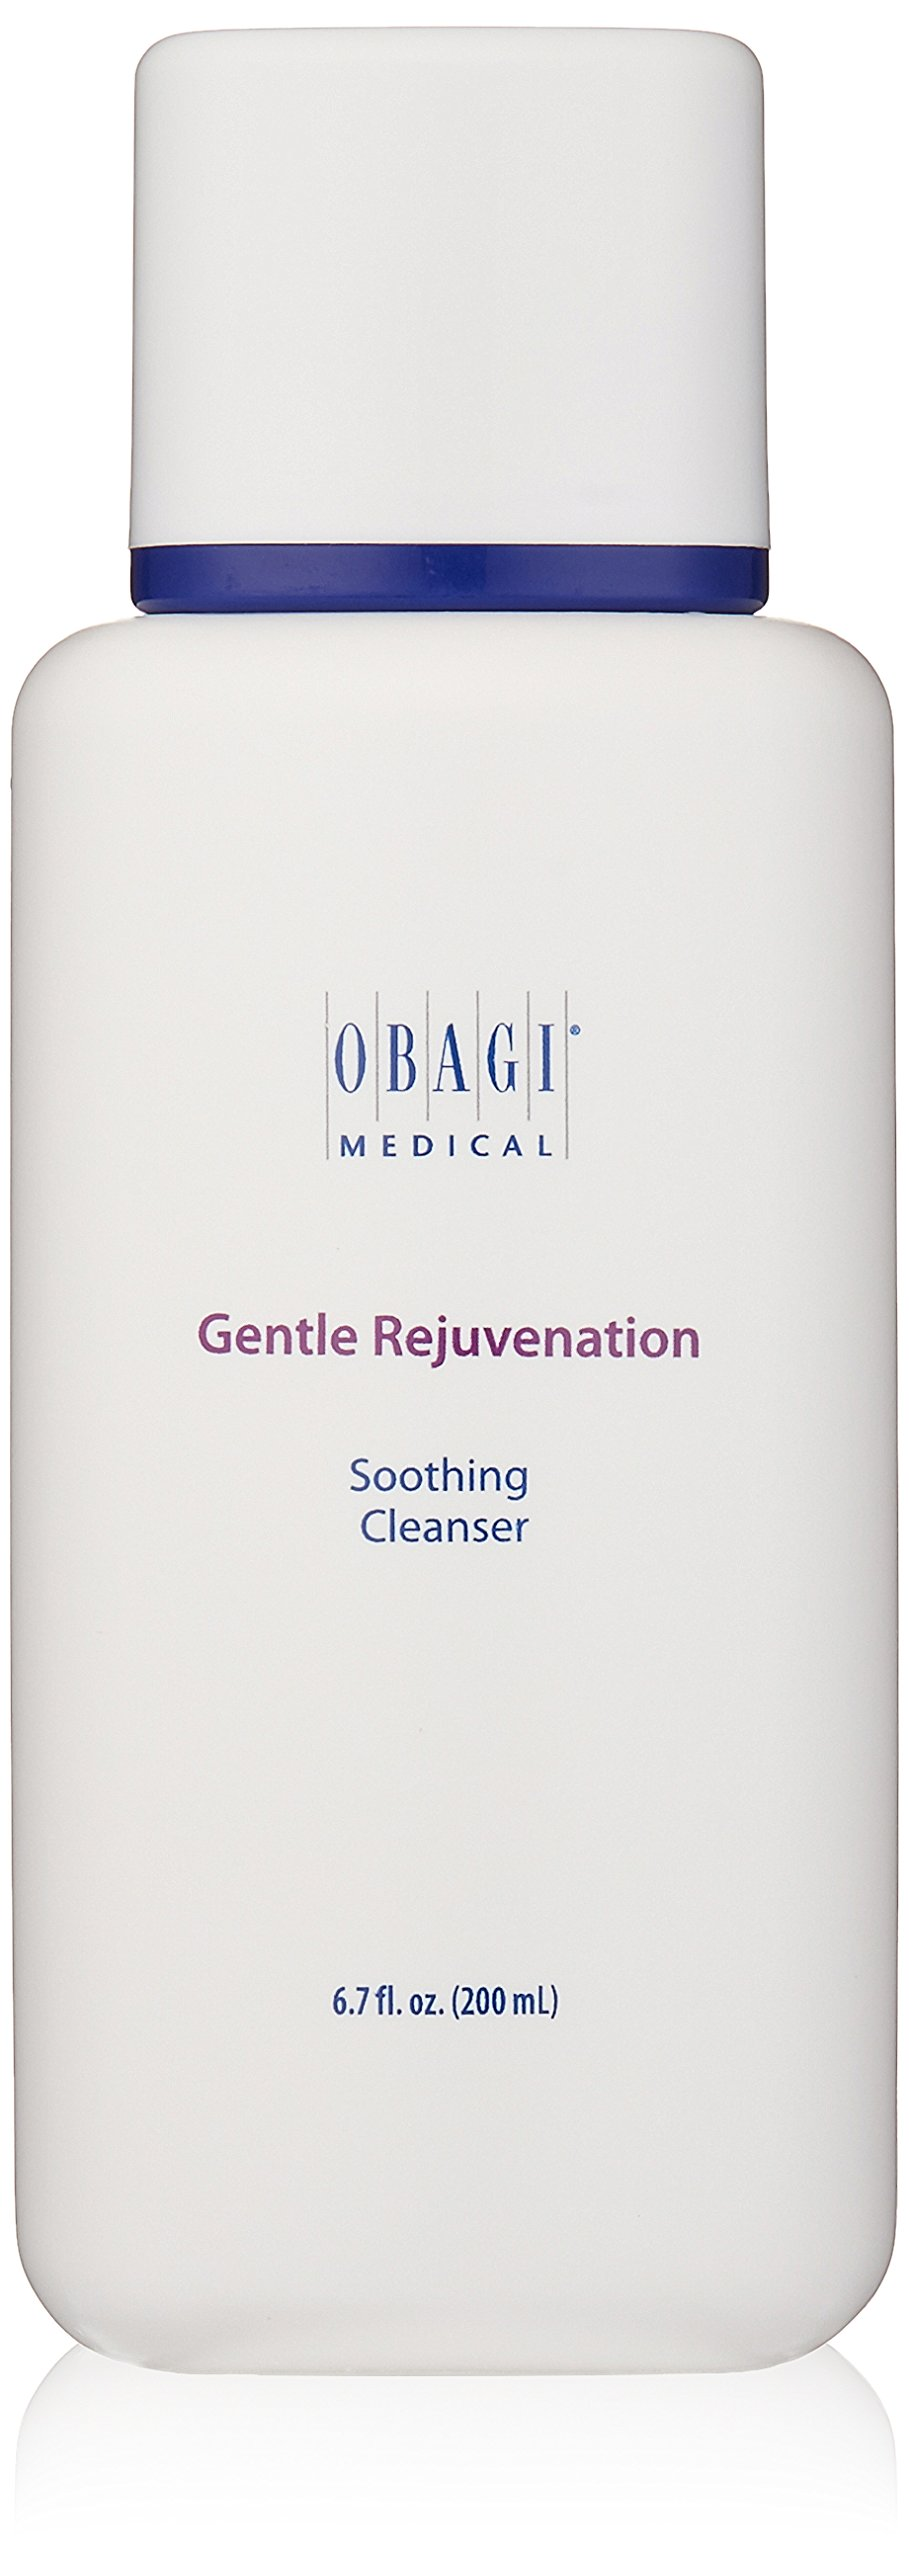 Obagi Gentle Rejuvenation Soothing Cleanser, 6.7 Fl Oz